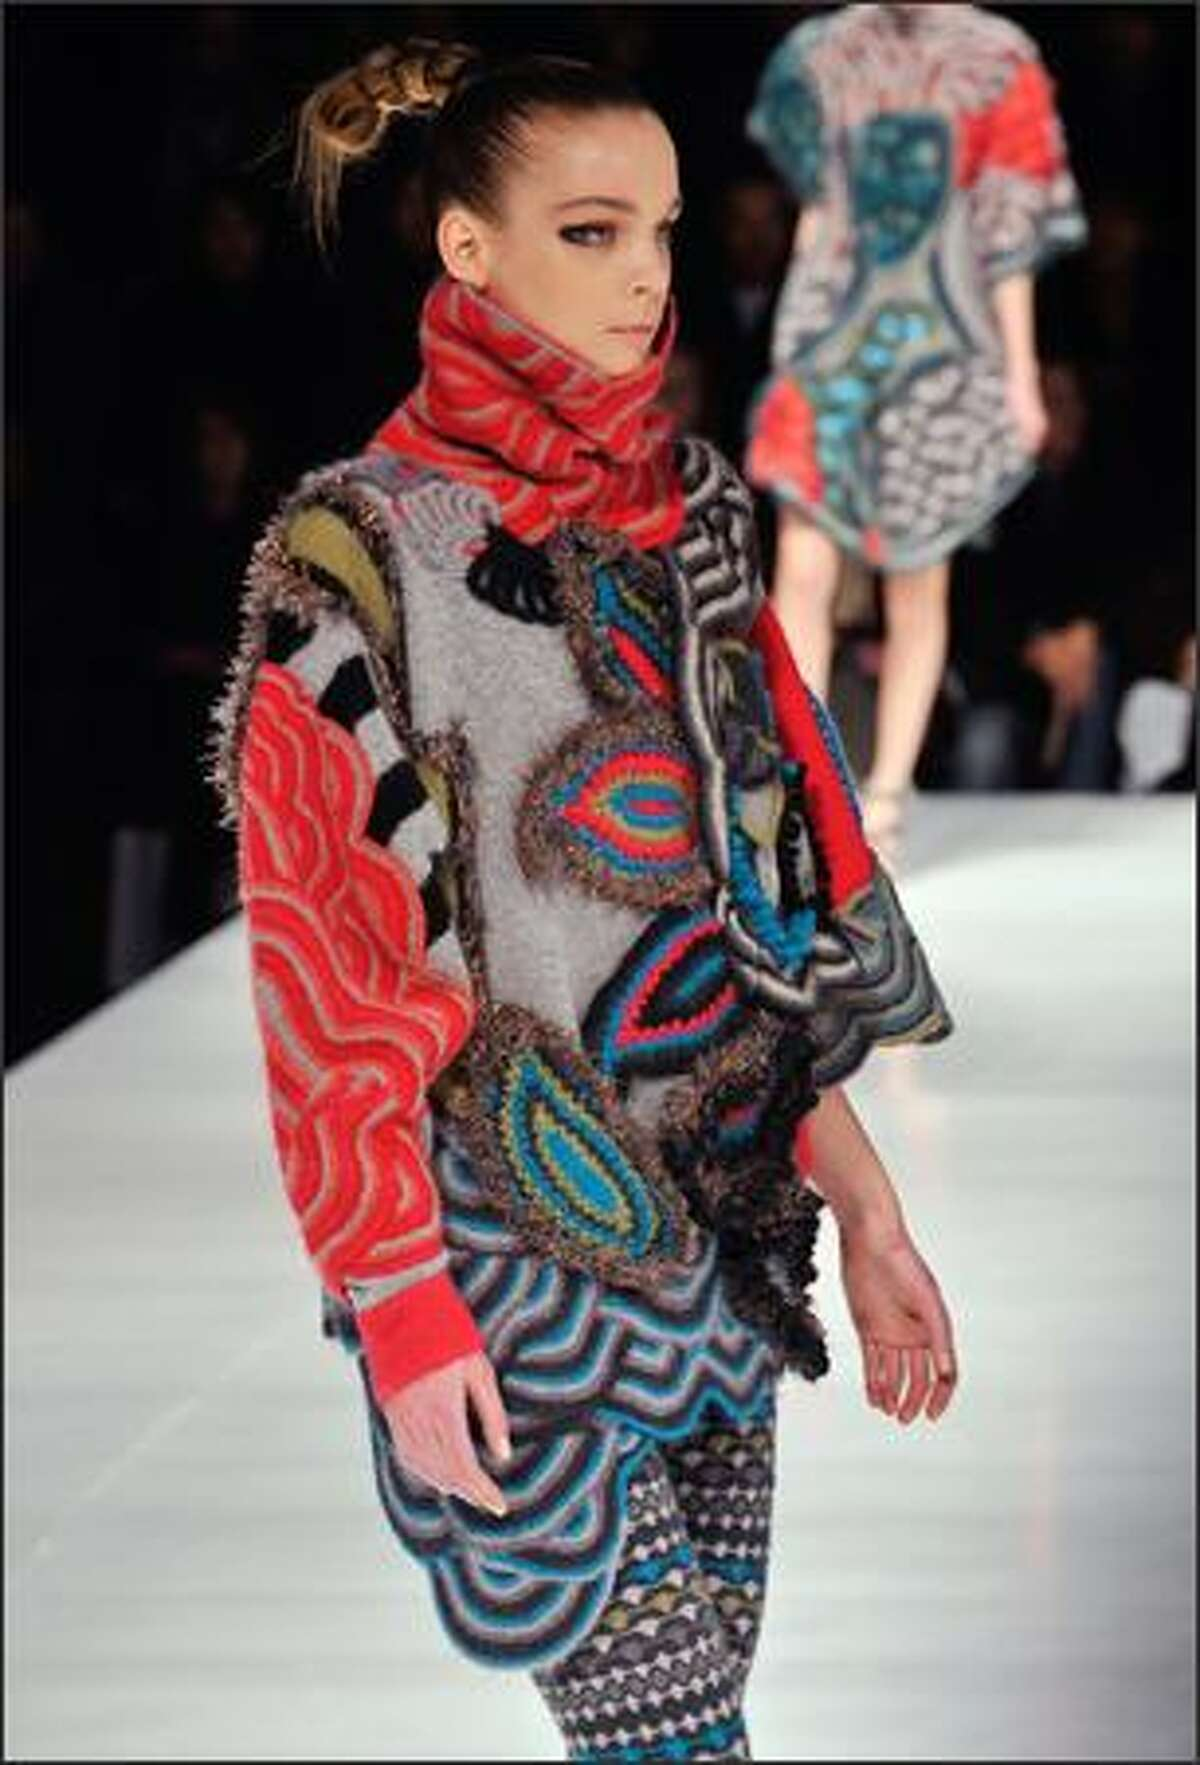 A model presents a creation by Italian designer Antonio Marras for Kenzo during the autumn/winter 2008-2009 ready-to-wear collection show in Paris.